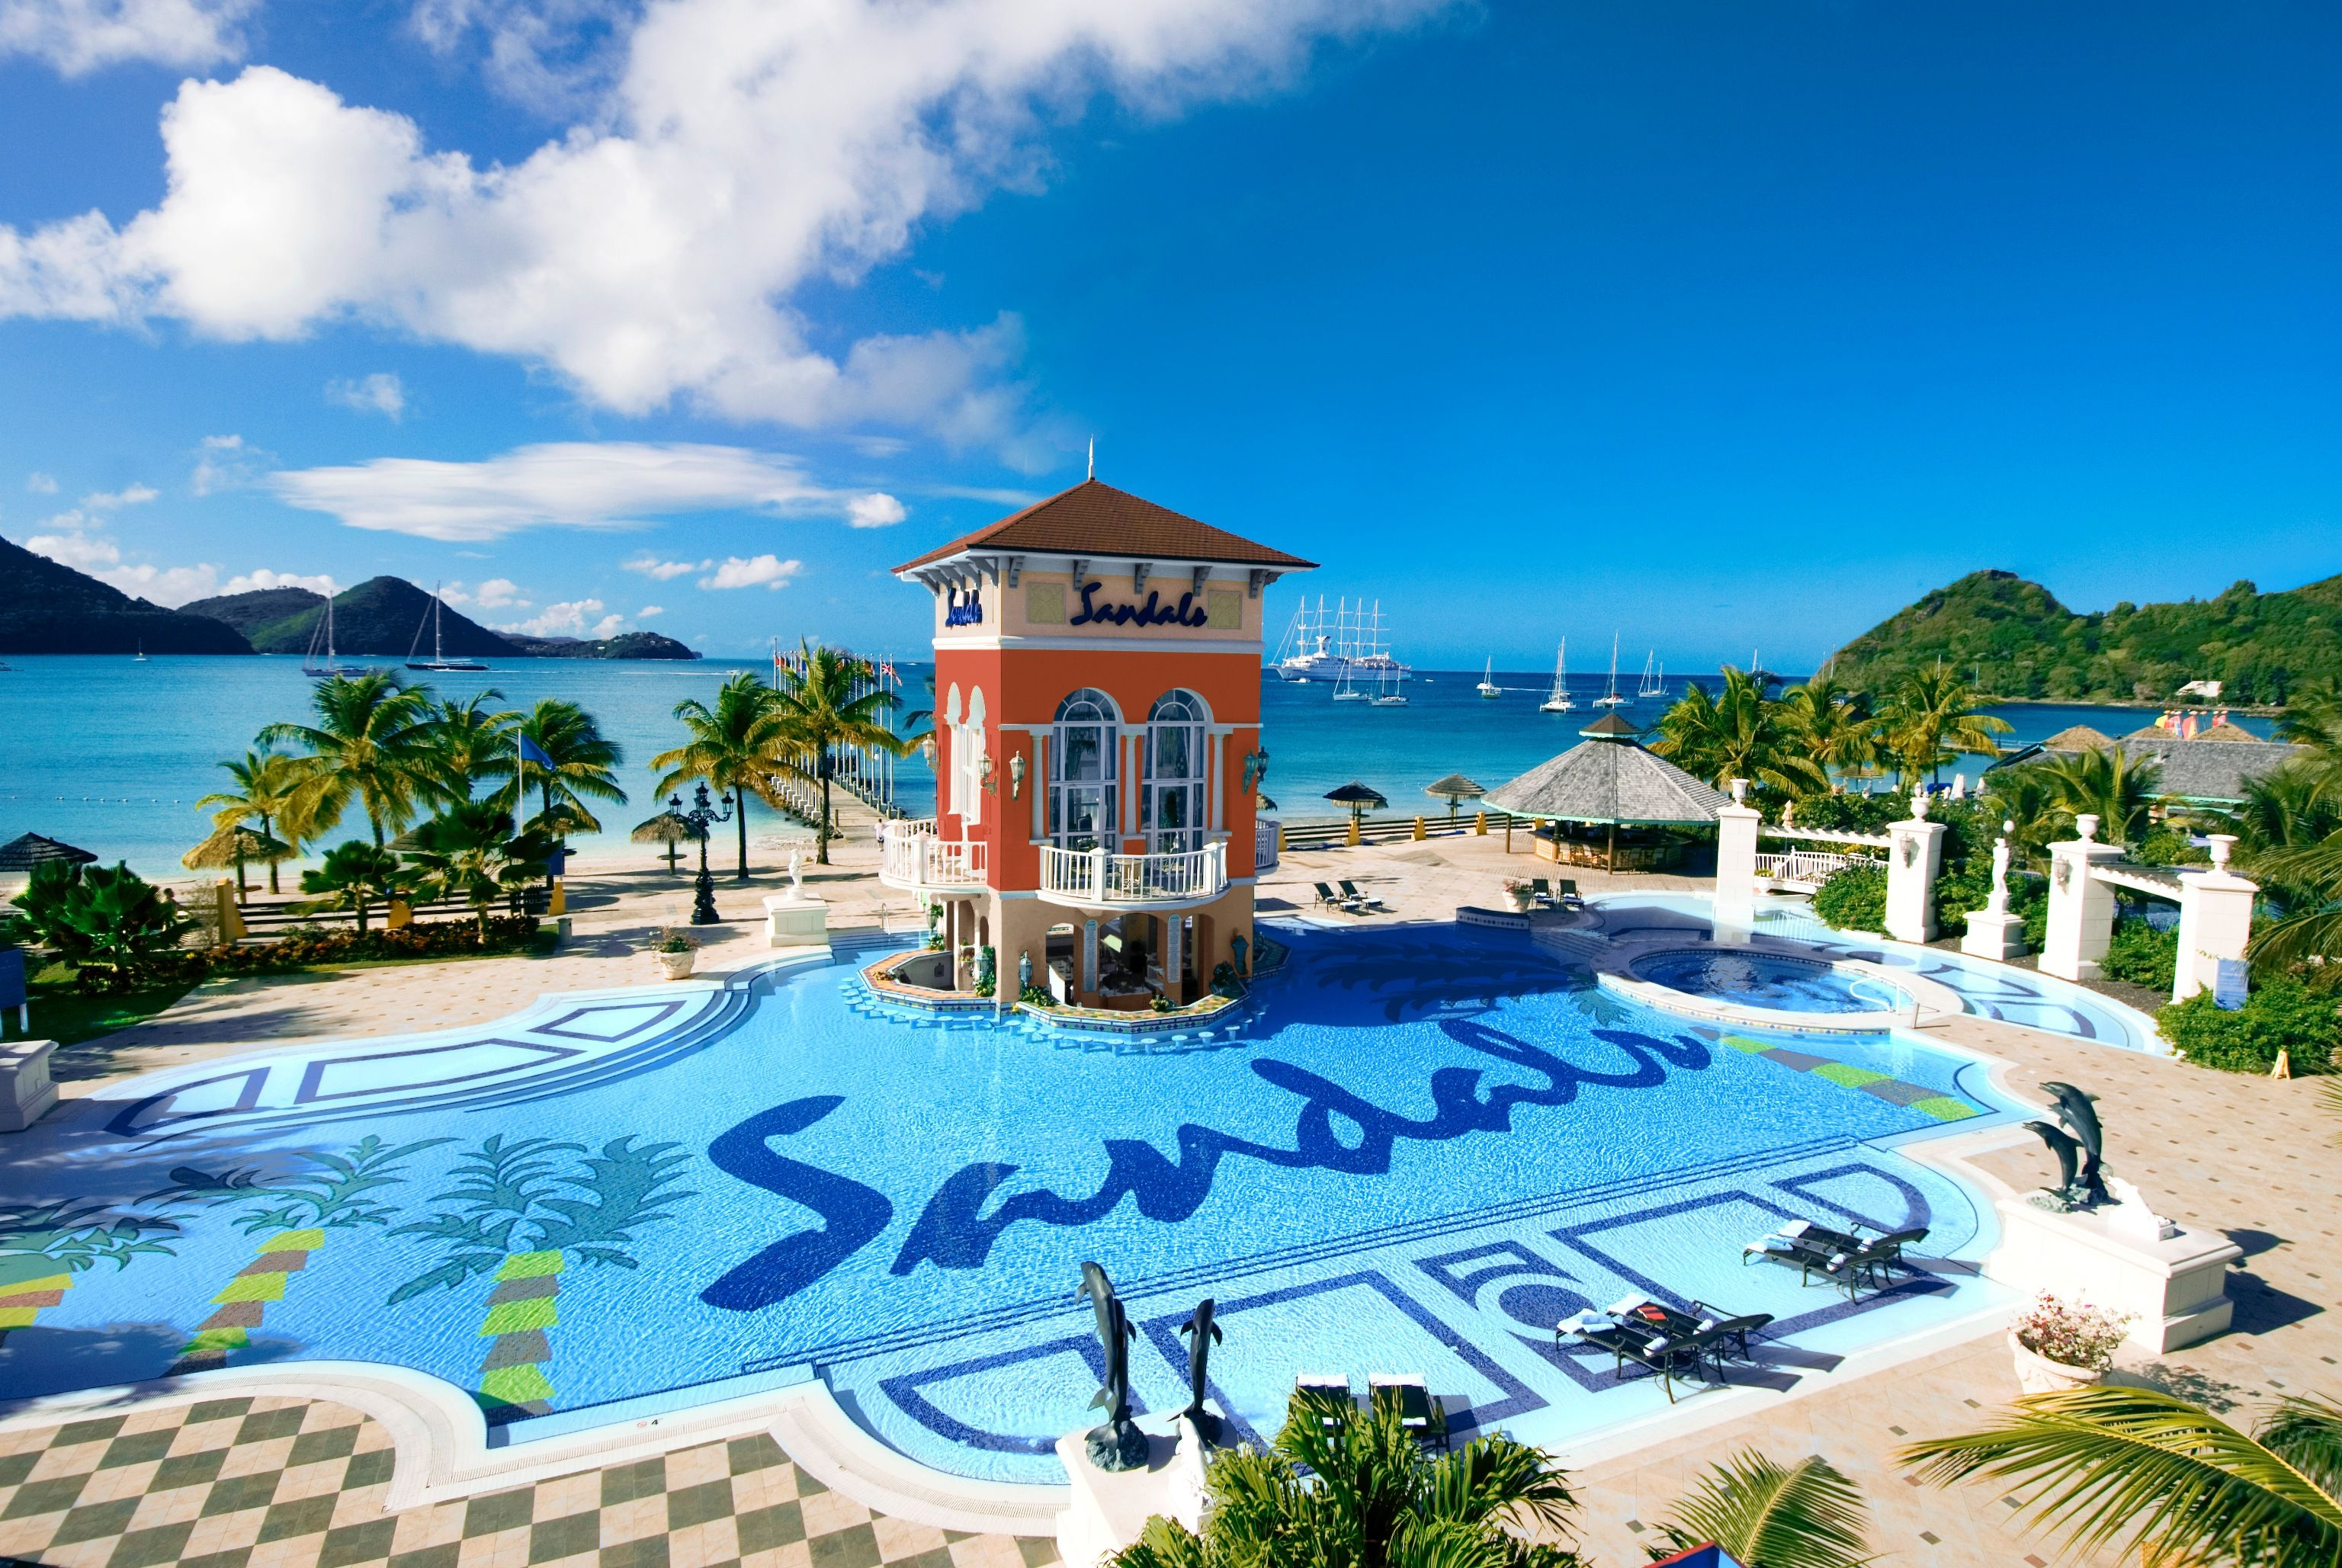 Image Detail For Sandals Grande St Lucian Spa Beach Resort Hotel England